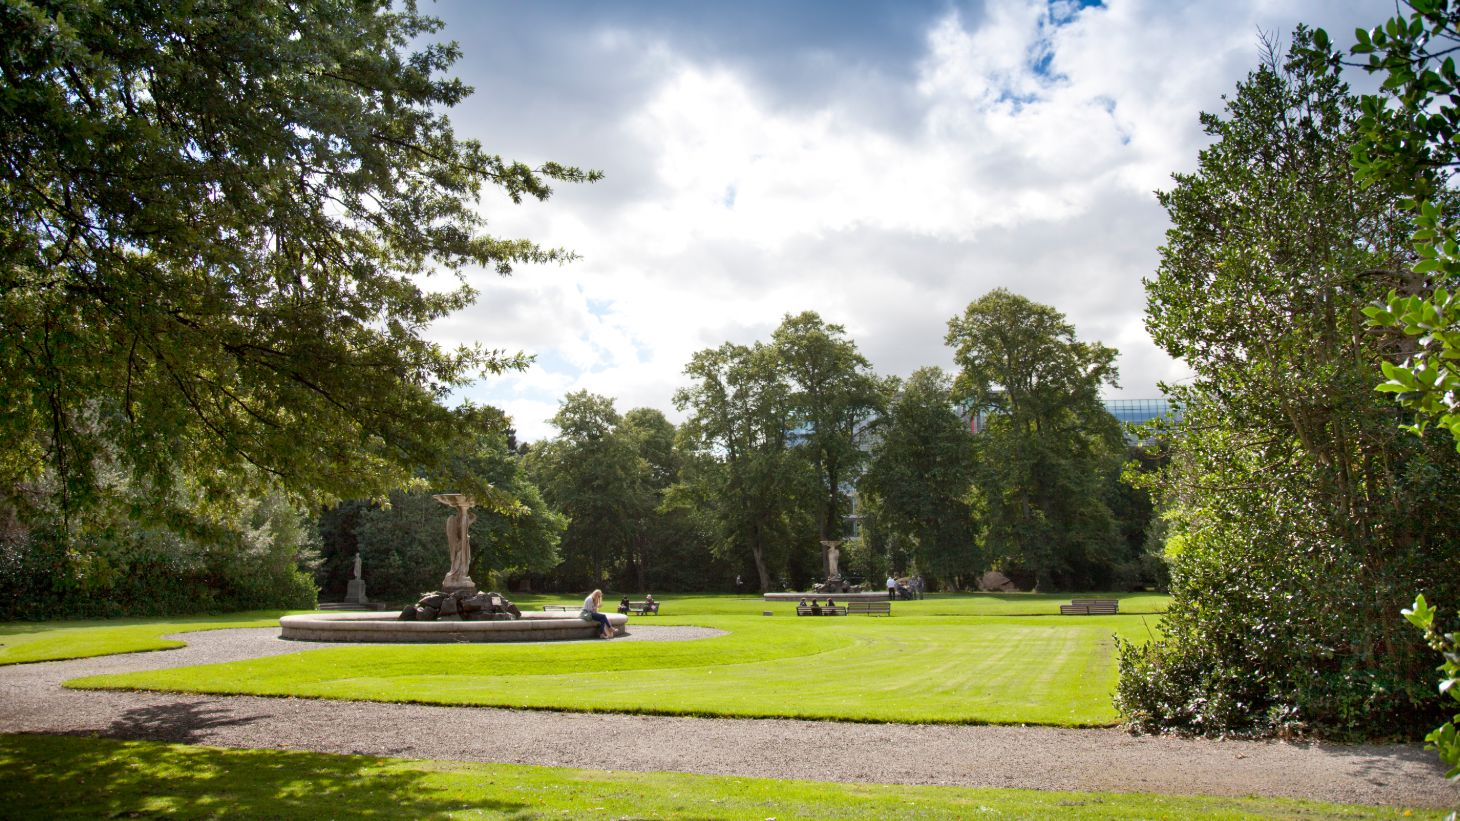 Enjoy an oasis in the city at the Iveagh Gardens.